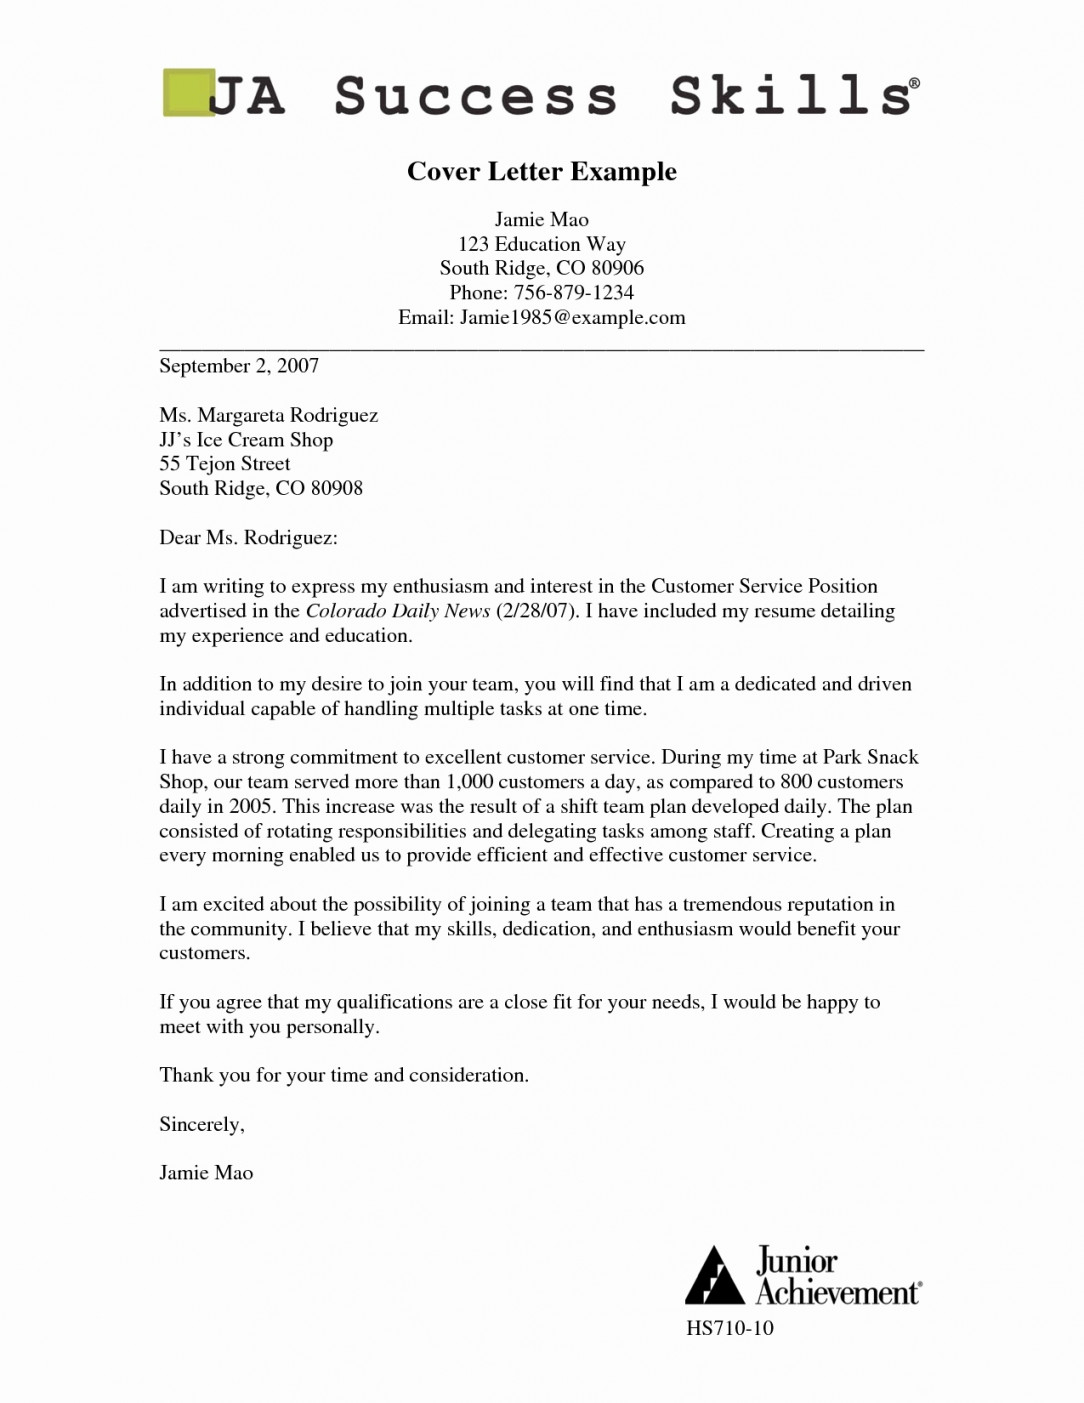 Increase Letter Template - Covering Letter Structure 27 Samples Cover Letters for Job Best Od